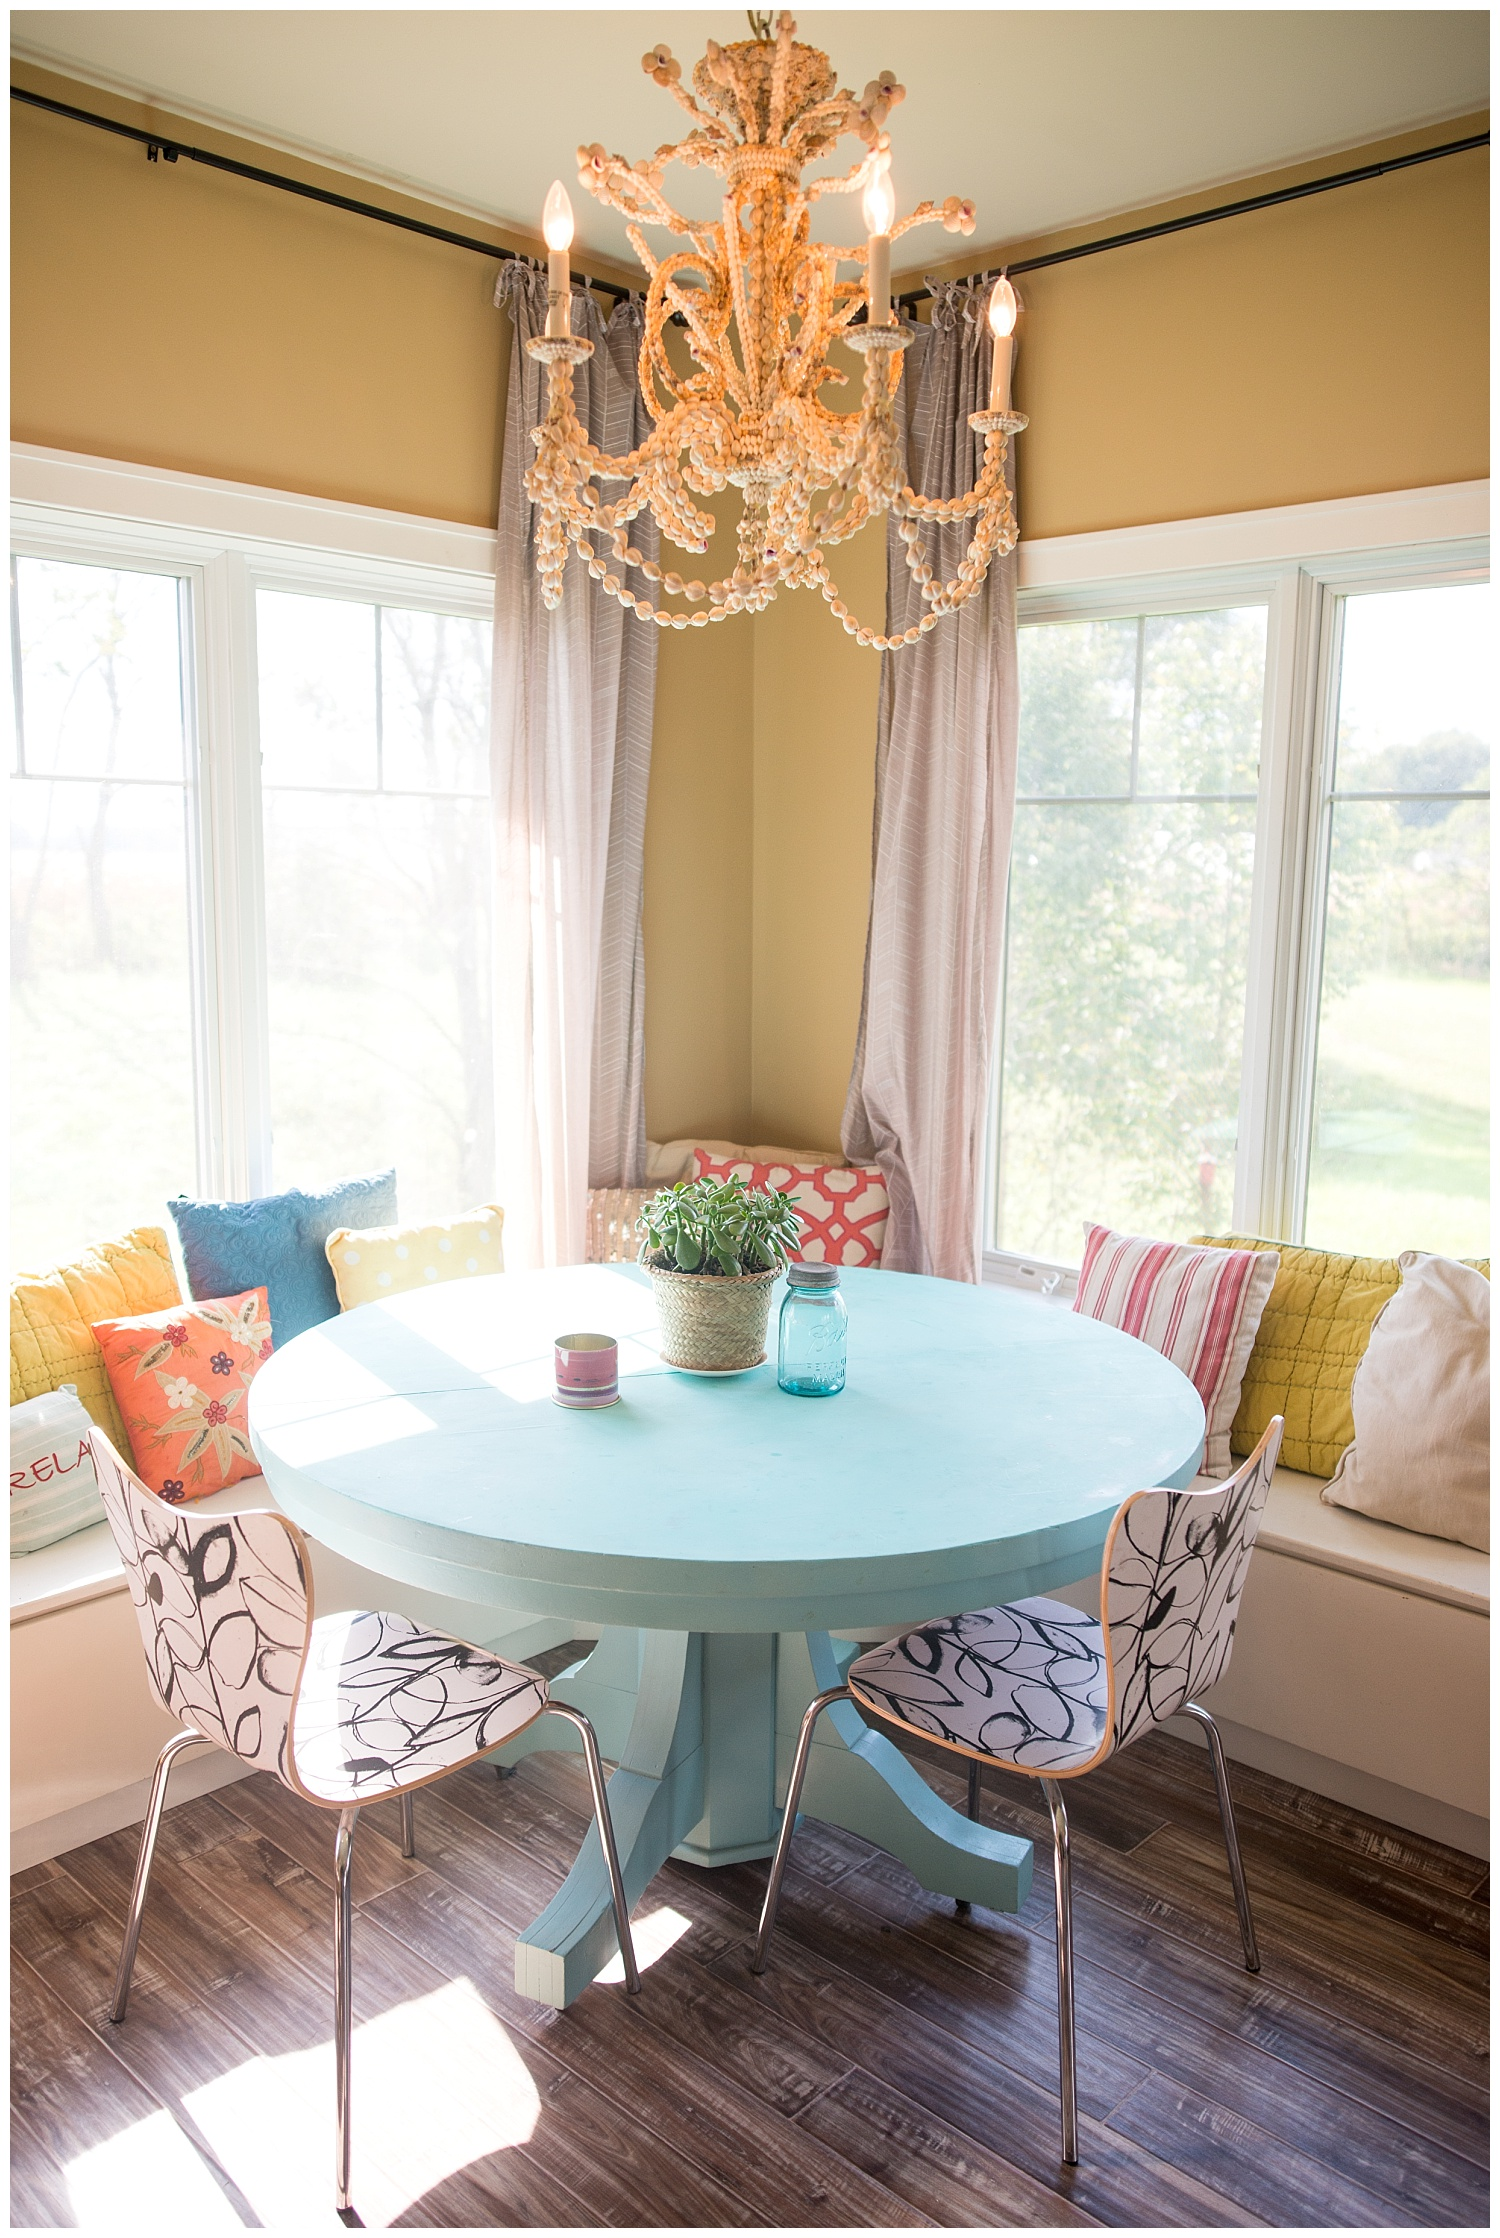 Check out the shell chandelier - it's easy to see why it's one of her favorite things.  The blue table below is one she painted herself.  And when you walk in her home it always smells nice.  On photo shoot day she was burning a few of the soy Illume candles that we carry in the shop.